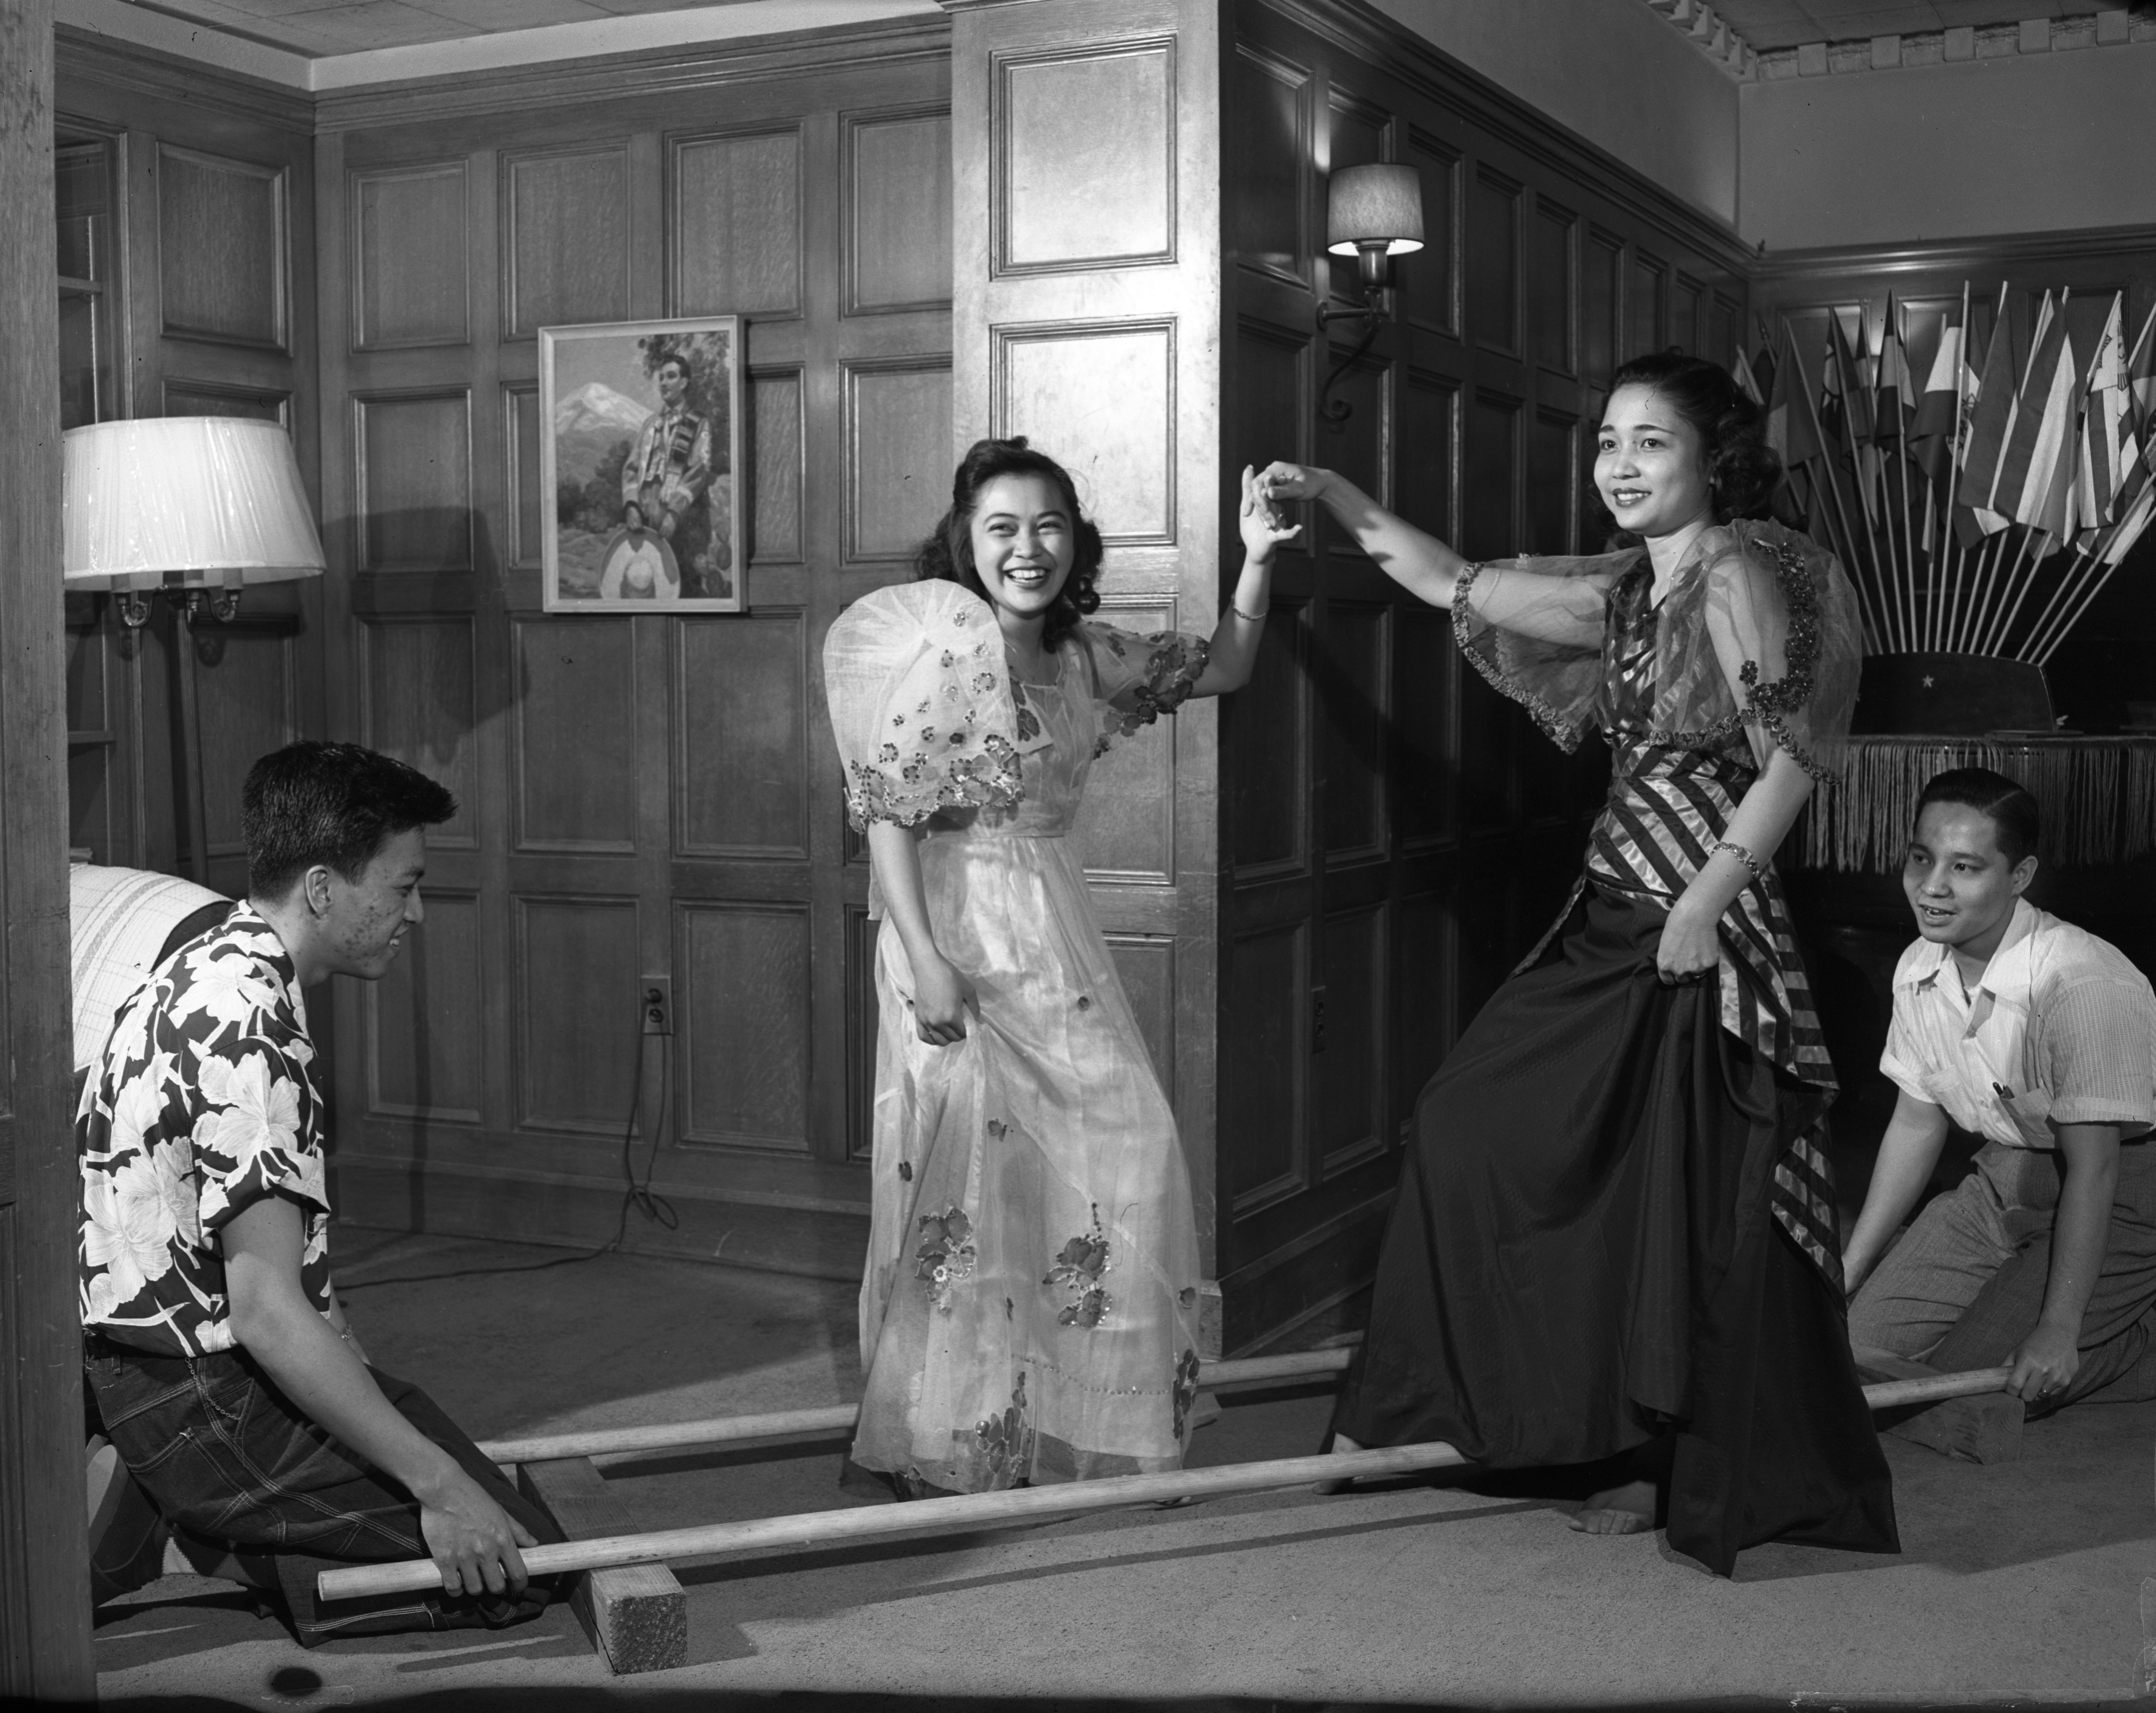 Demonstration Of Dance From The Philippines At UM International Center, May 1951 image